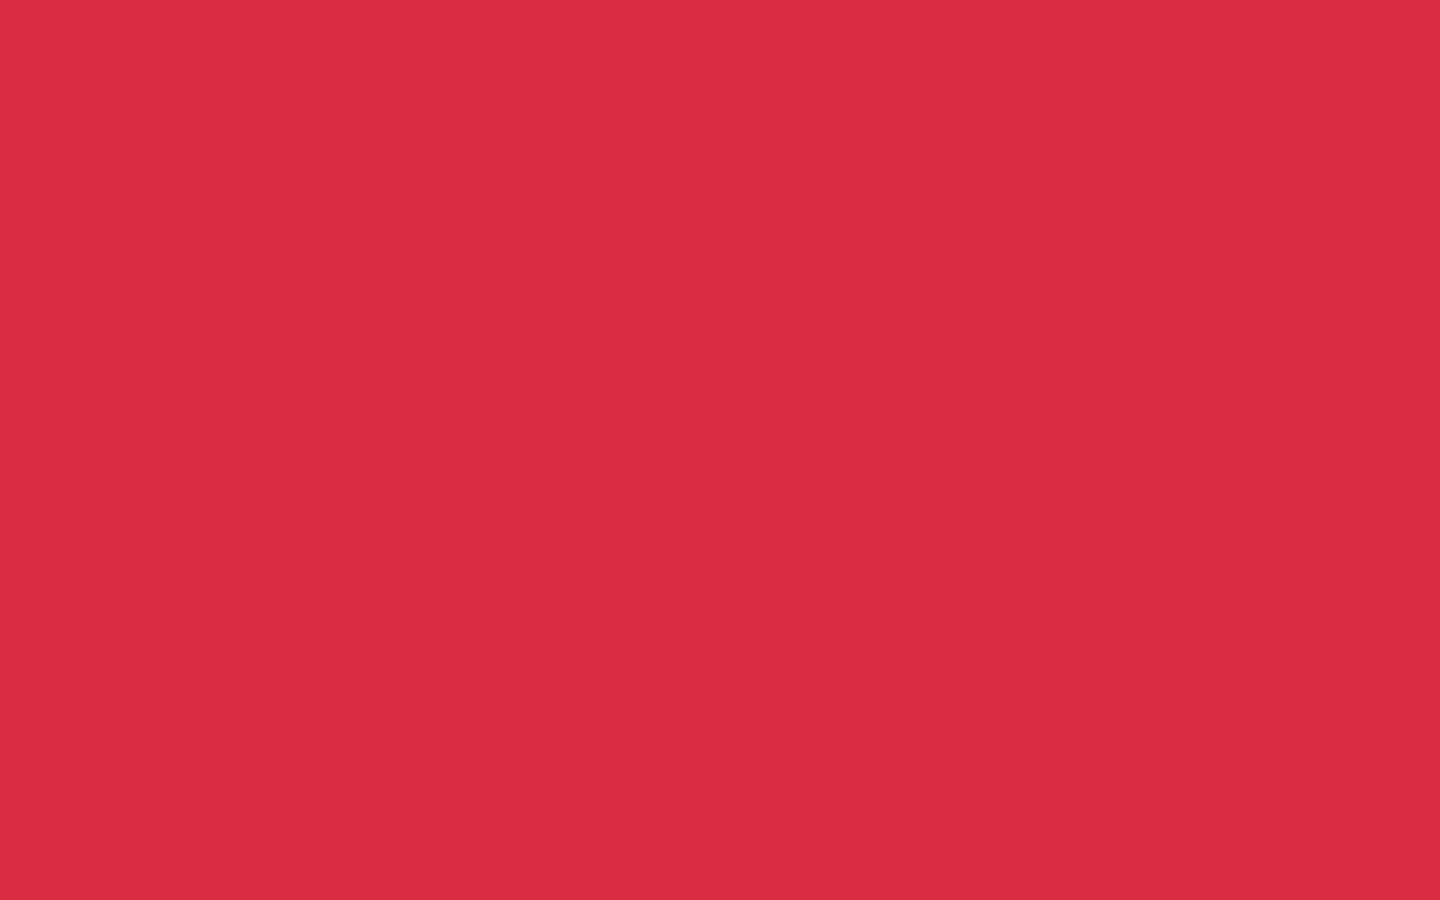 1440x900 Rusty Red Solid Color Background